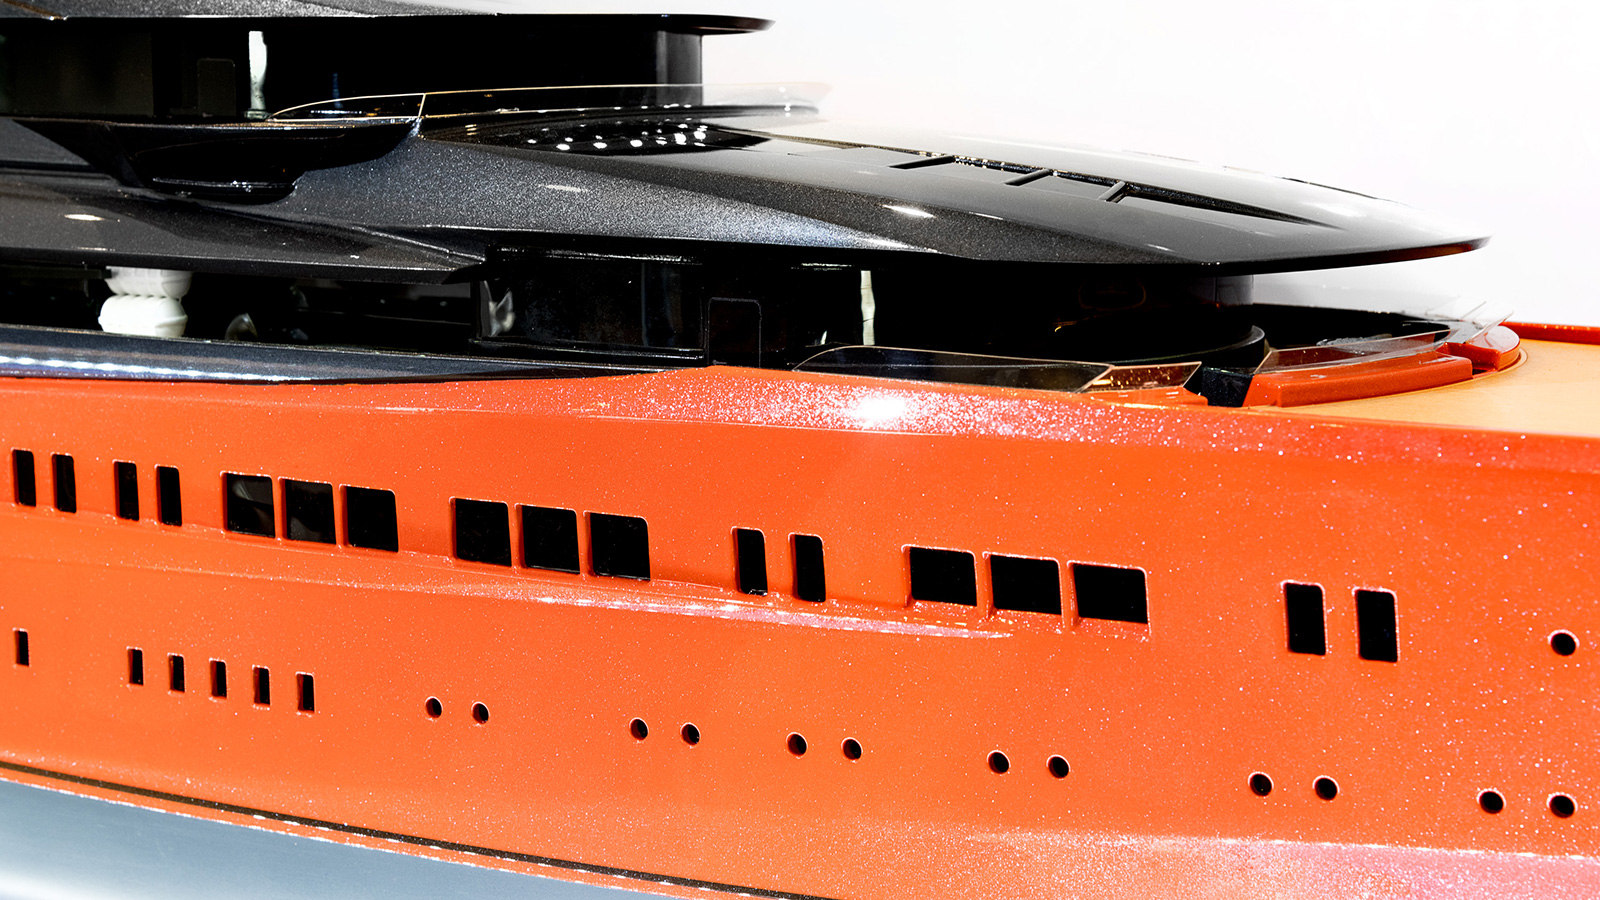 close-up-of-the-oceanco-yacht-concept-project-lumen